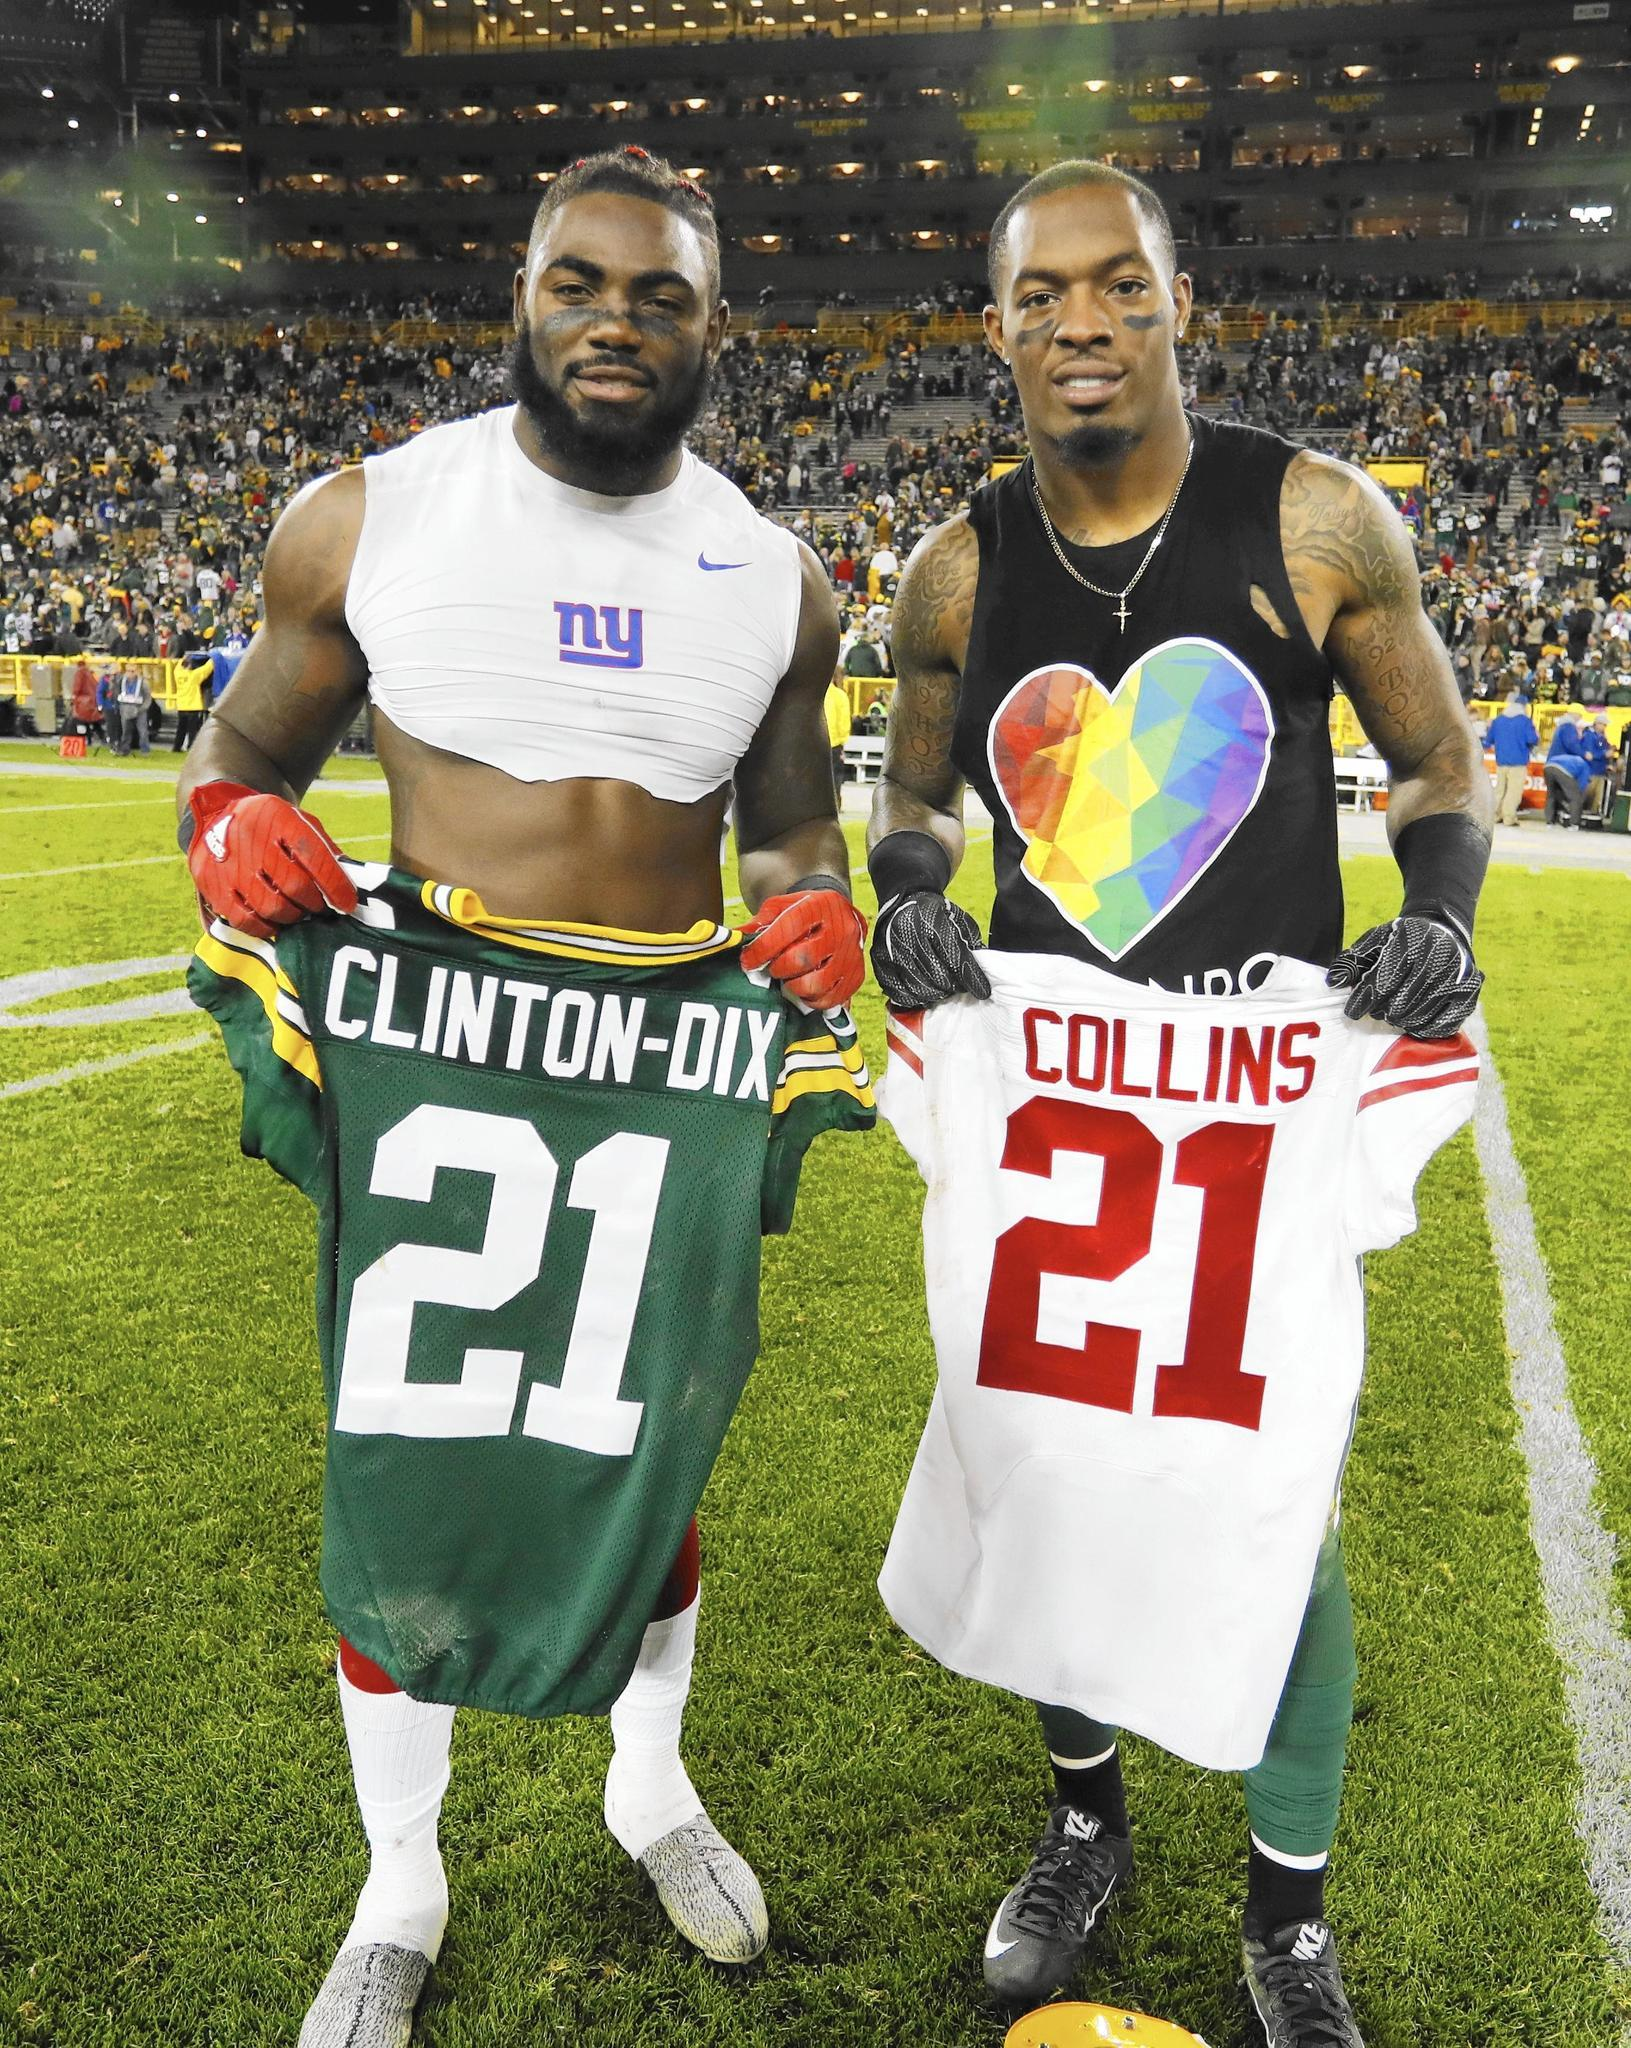 Roll Tide Giants Collins and Packers Clinton Dix shine